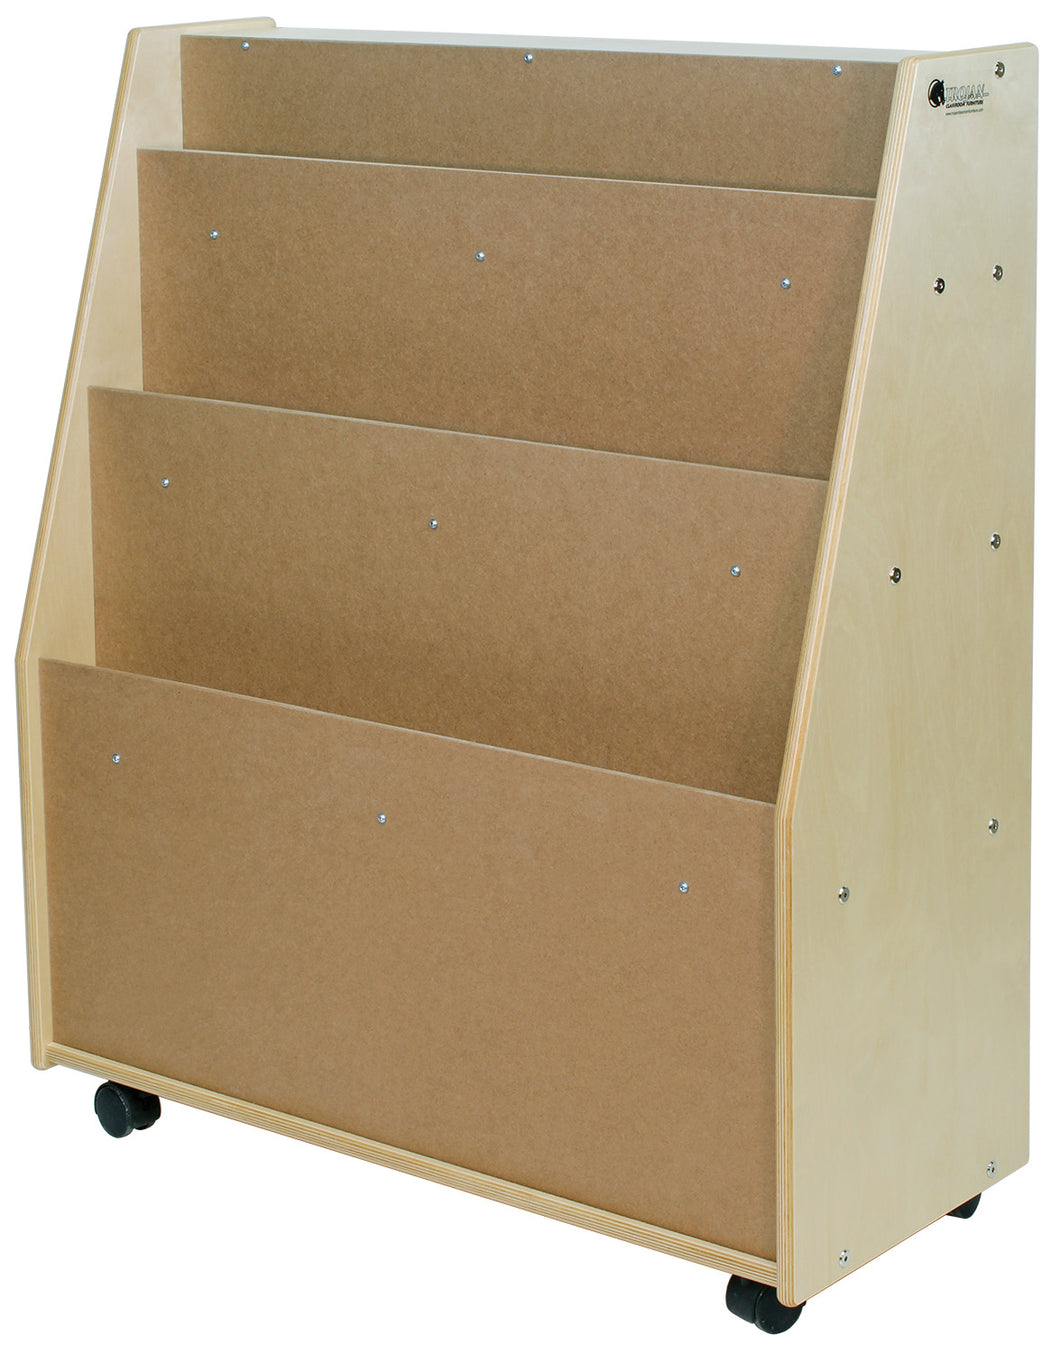 Book Mobile & Storage with 3 Shelves (S329)